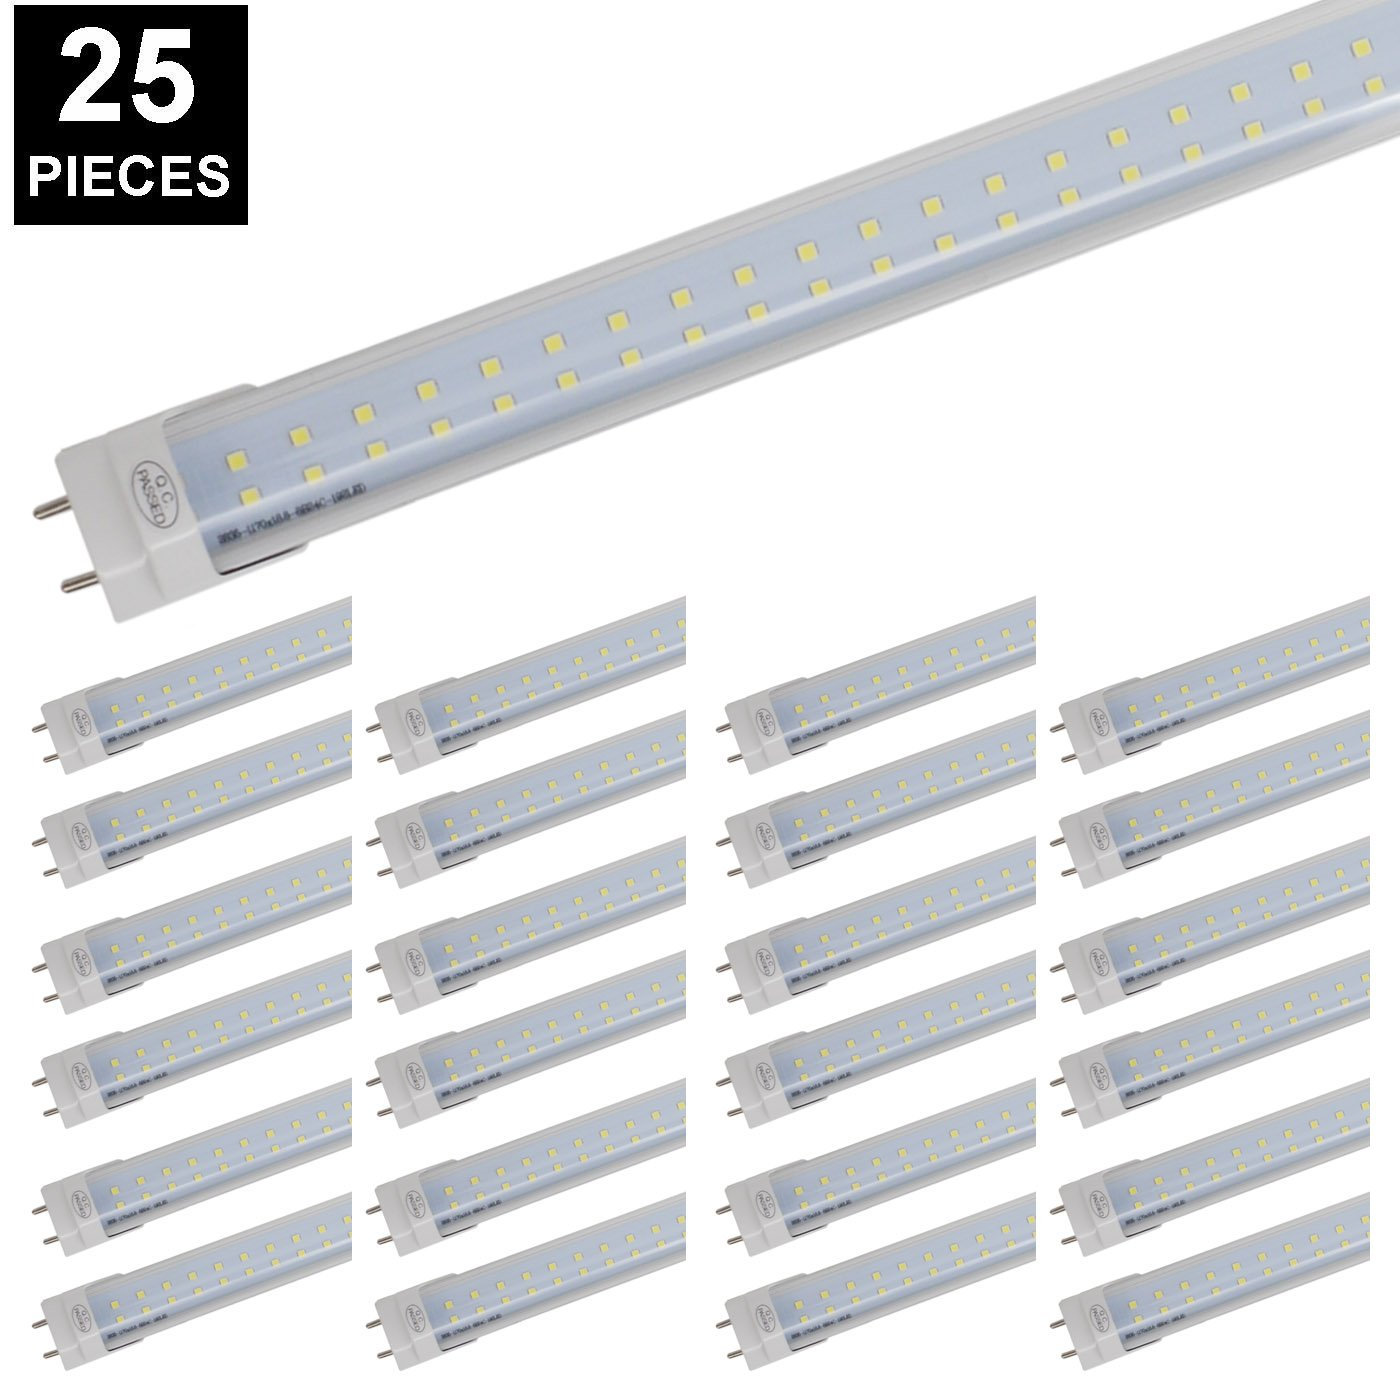 CNSUNWAY 4ft LED Tube, 48'' 28 Watt Dual Row Light Bulb 2800LM Lamps 6000K Cool White with Clean Cover (25 Pack)